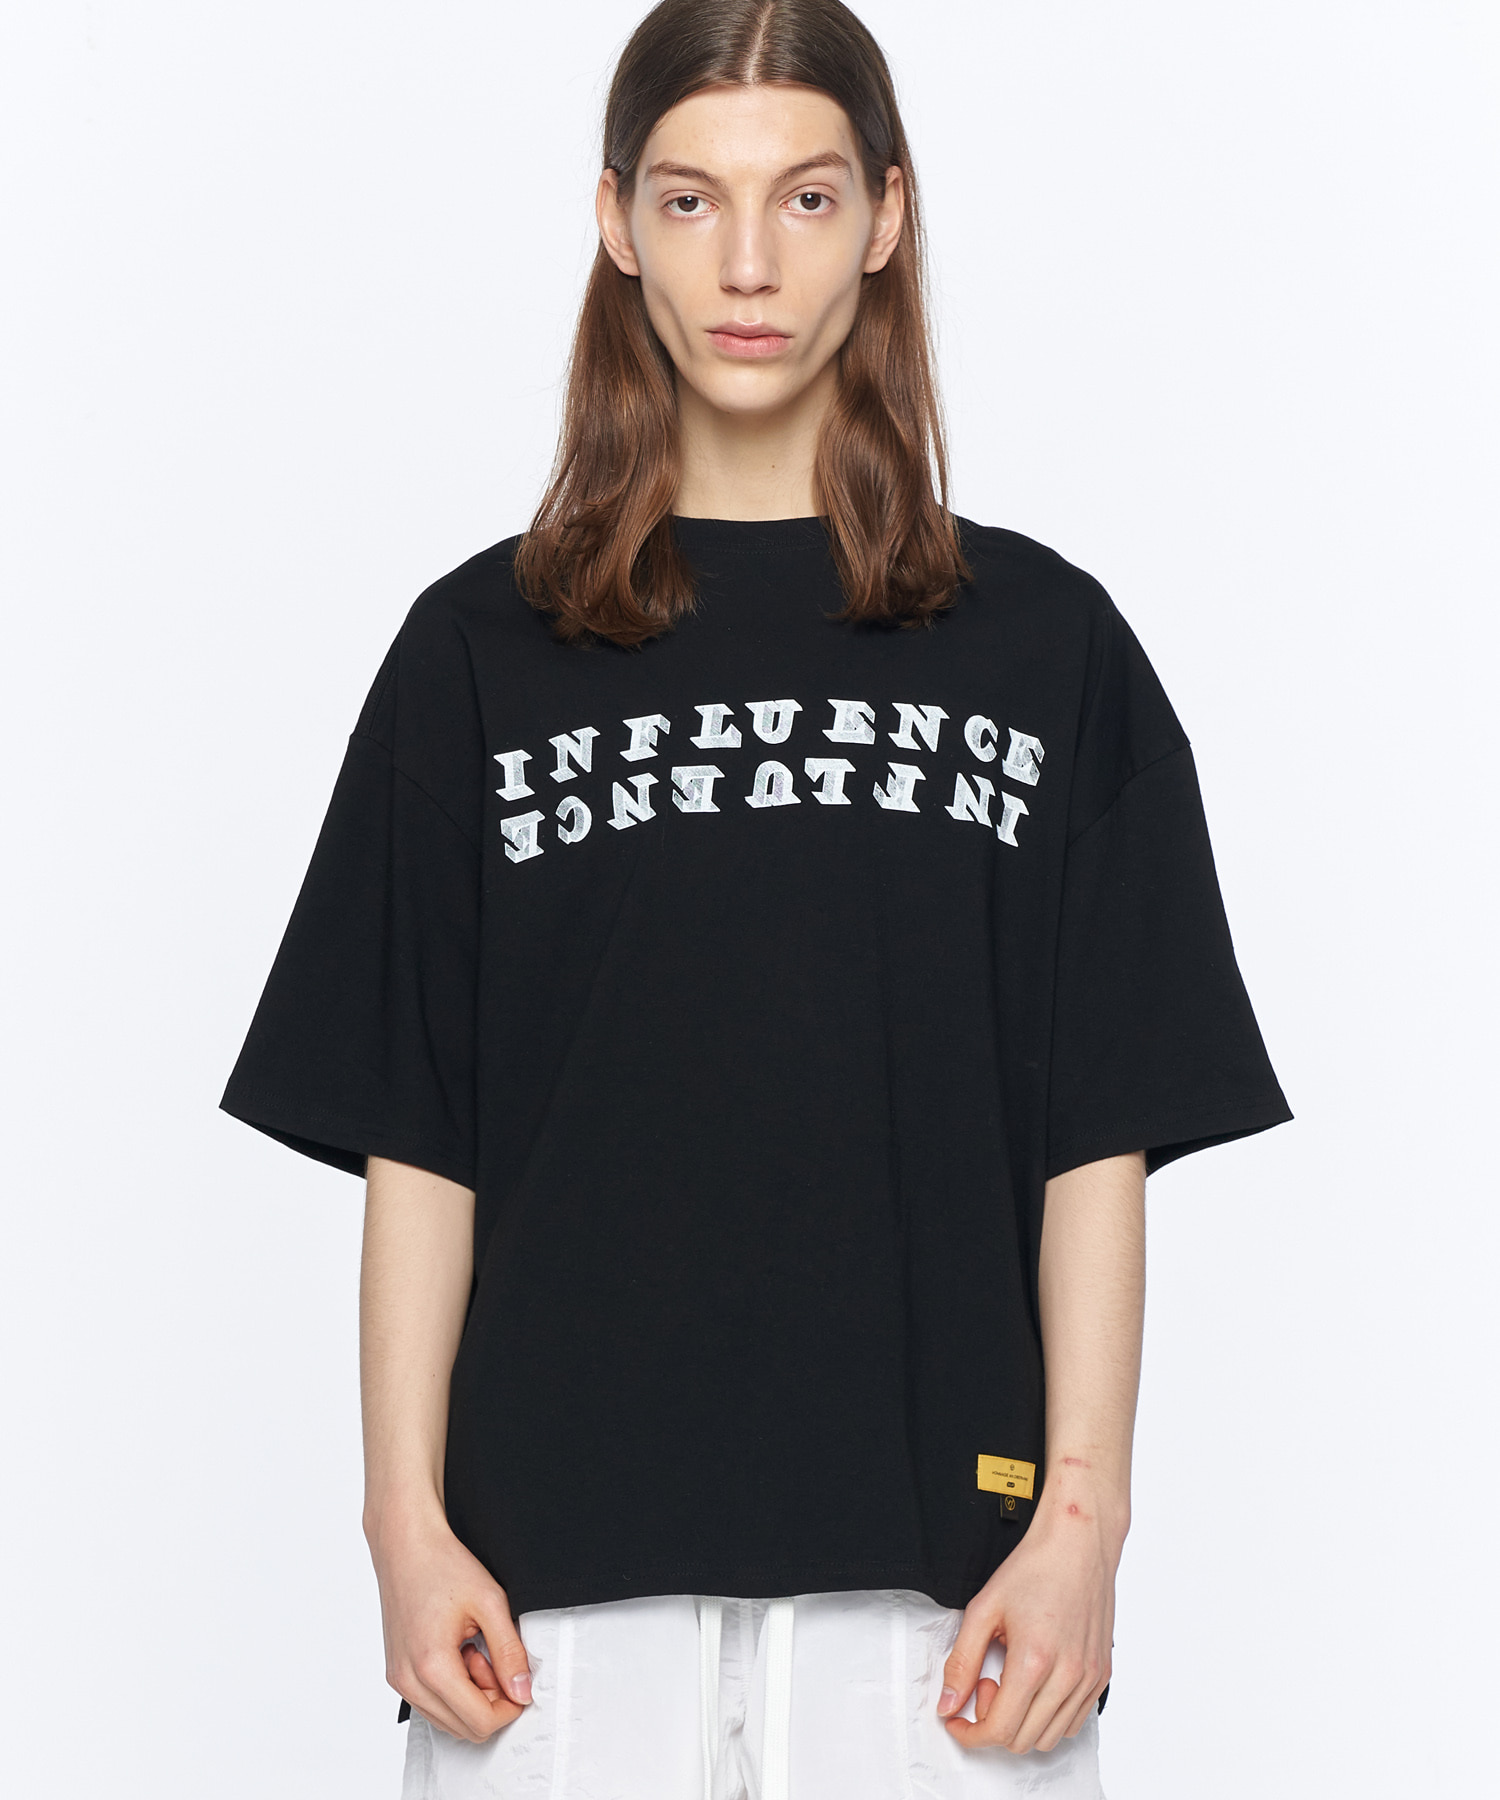 ESSAY. INFLUENCE BLACK T-SHIRTS